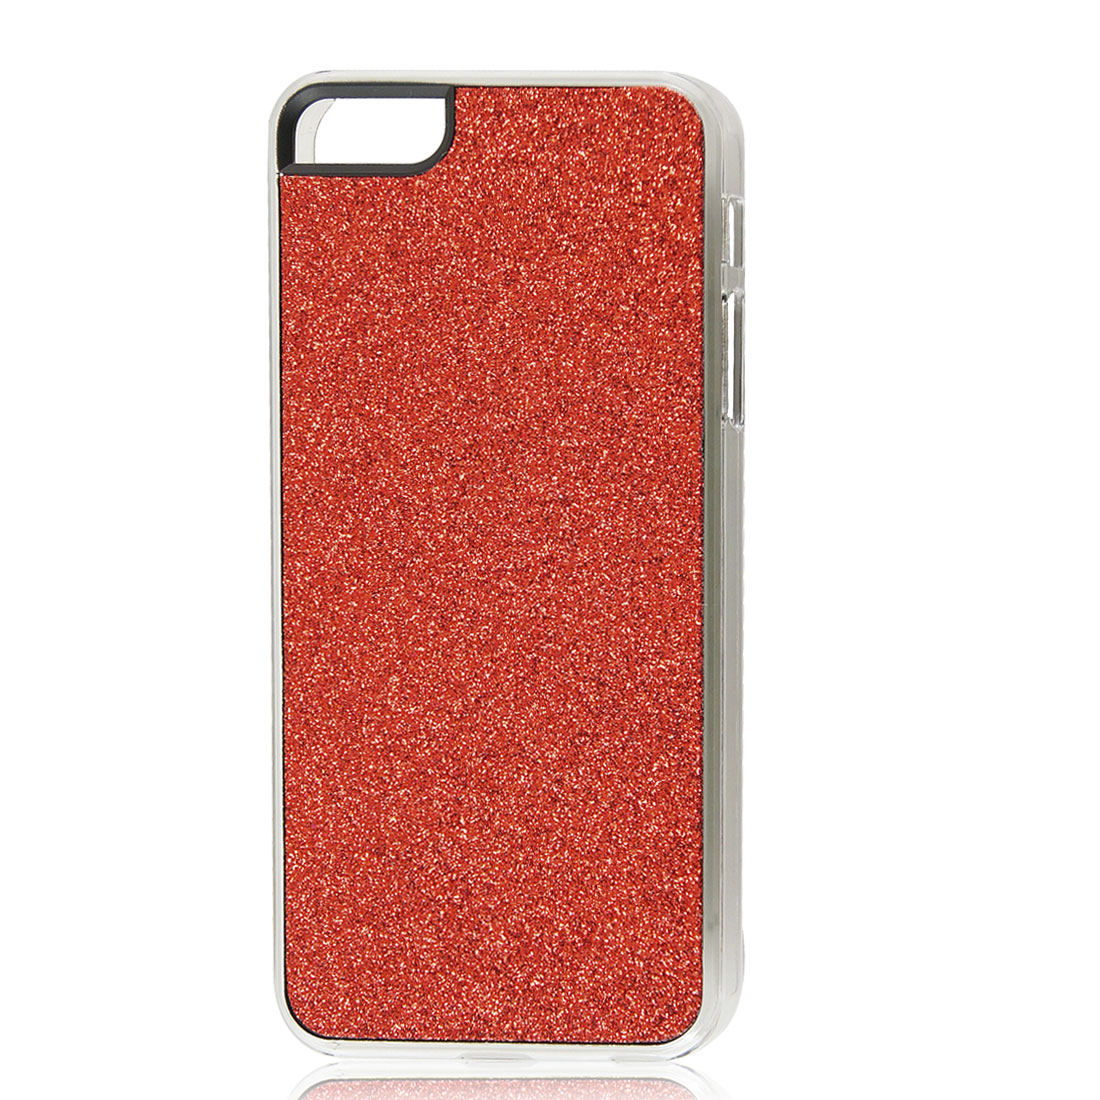 Red Glitter Glittery Sparkly Bling Hard Back Case Cover for iPhone 5 5G